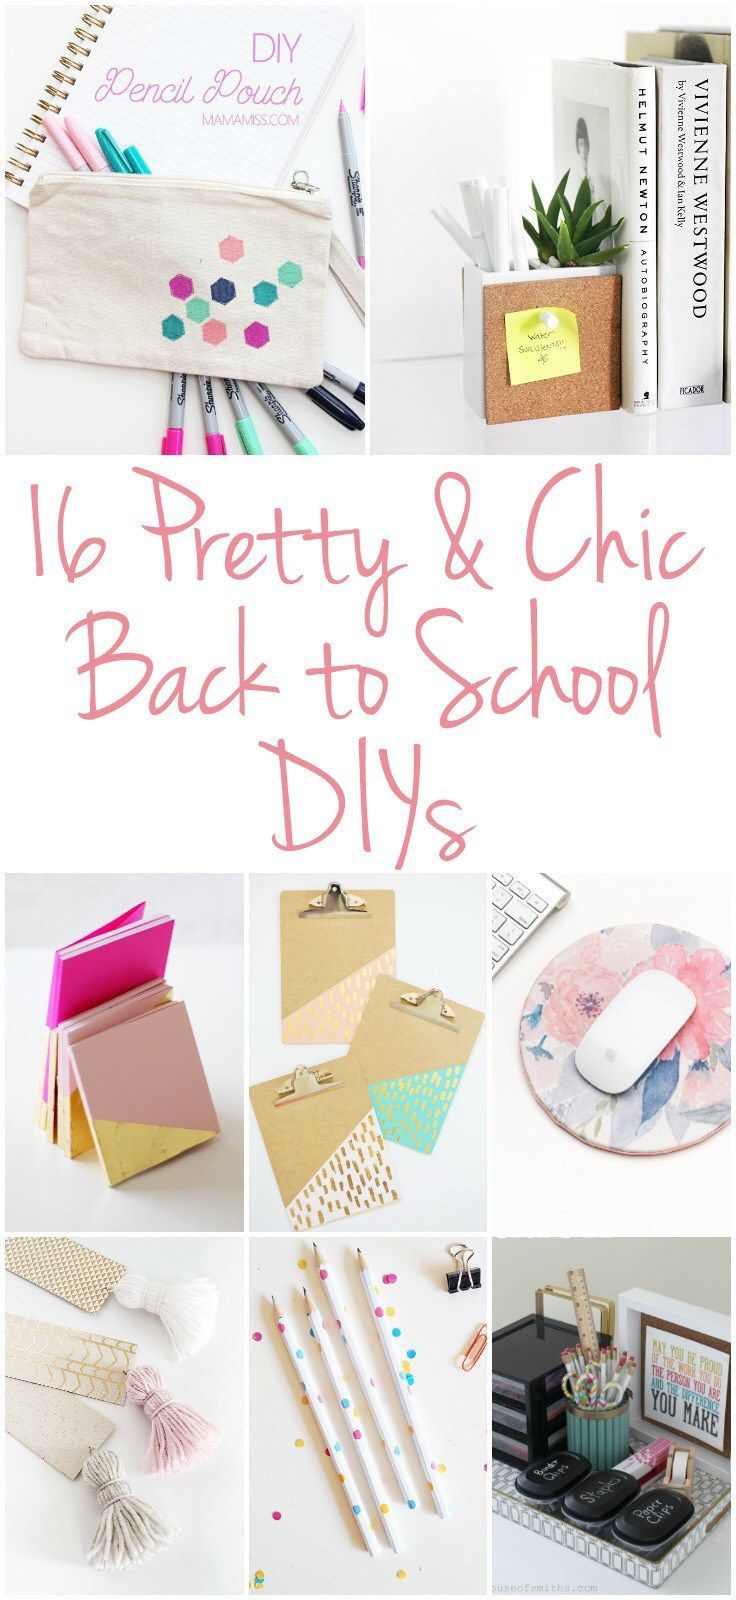 16 Pretty & Chic Back to School DIYs, home office organization, back to school c...